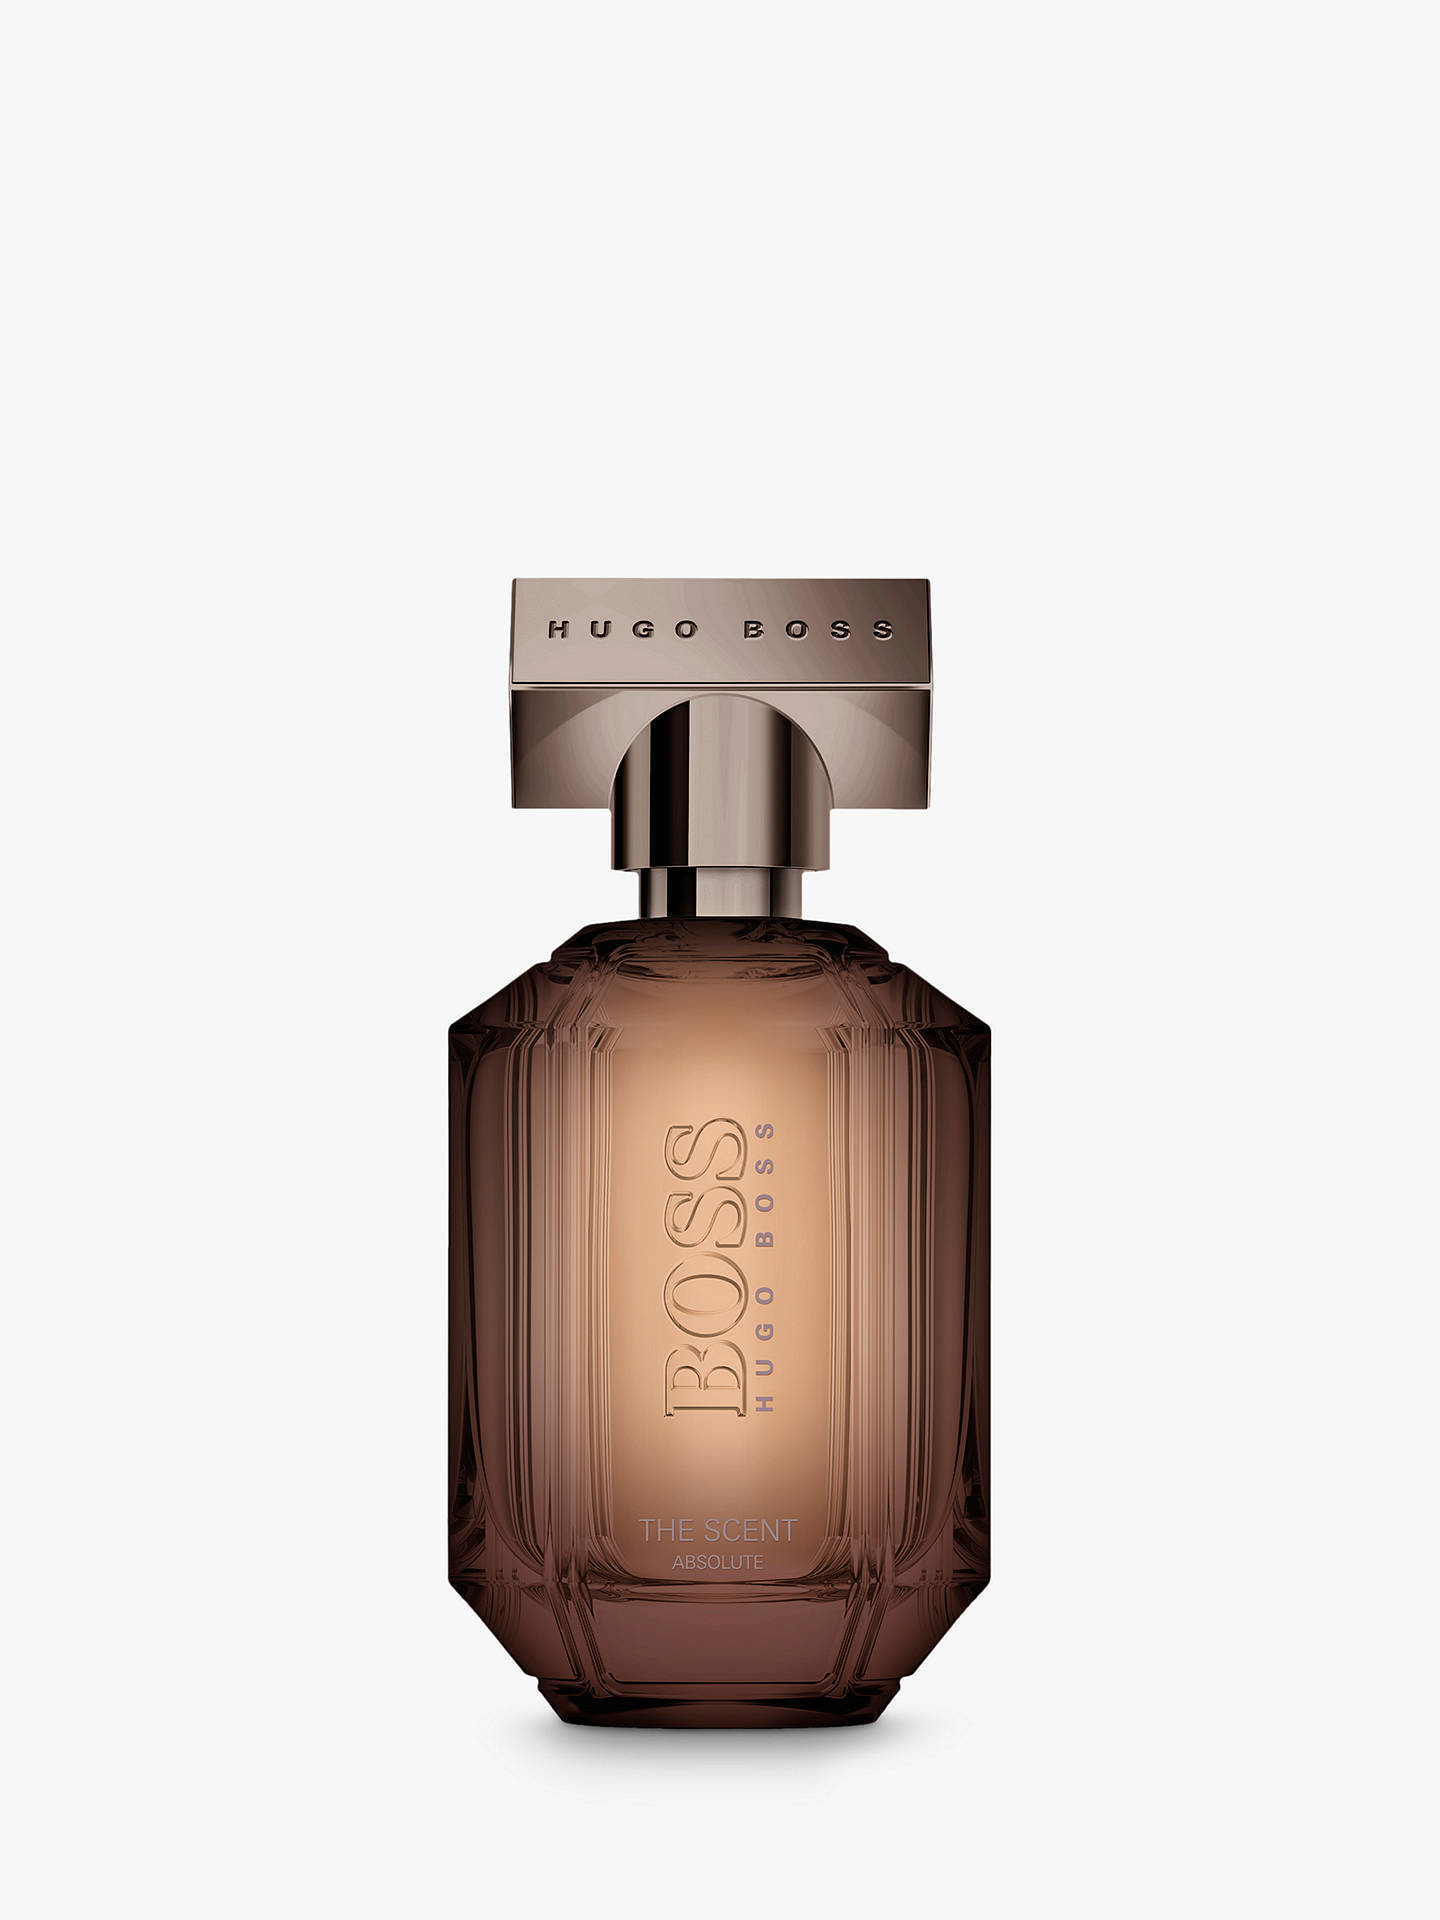 Buy HUGO BOSS BOSS The Scent Absolute For Her Eau de Parfum, 50ml Online at johnlewis.com